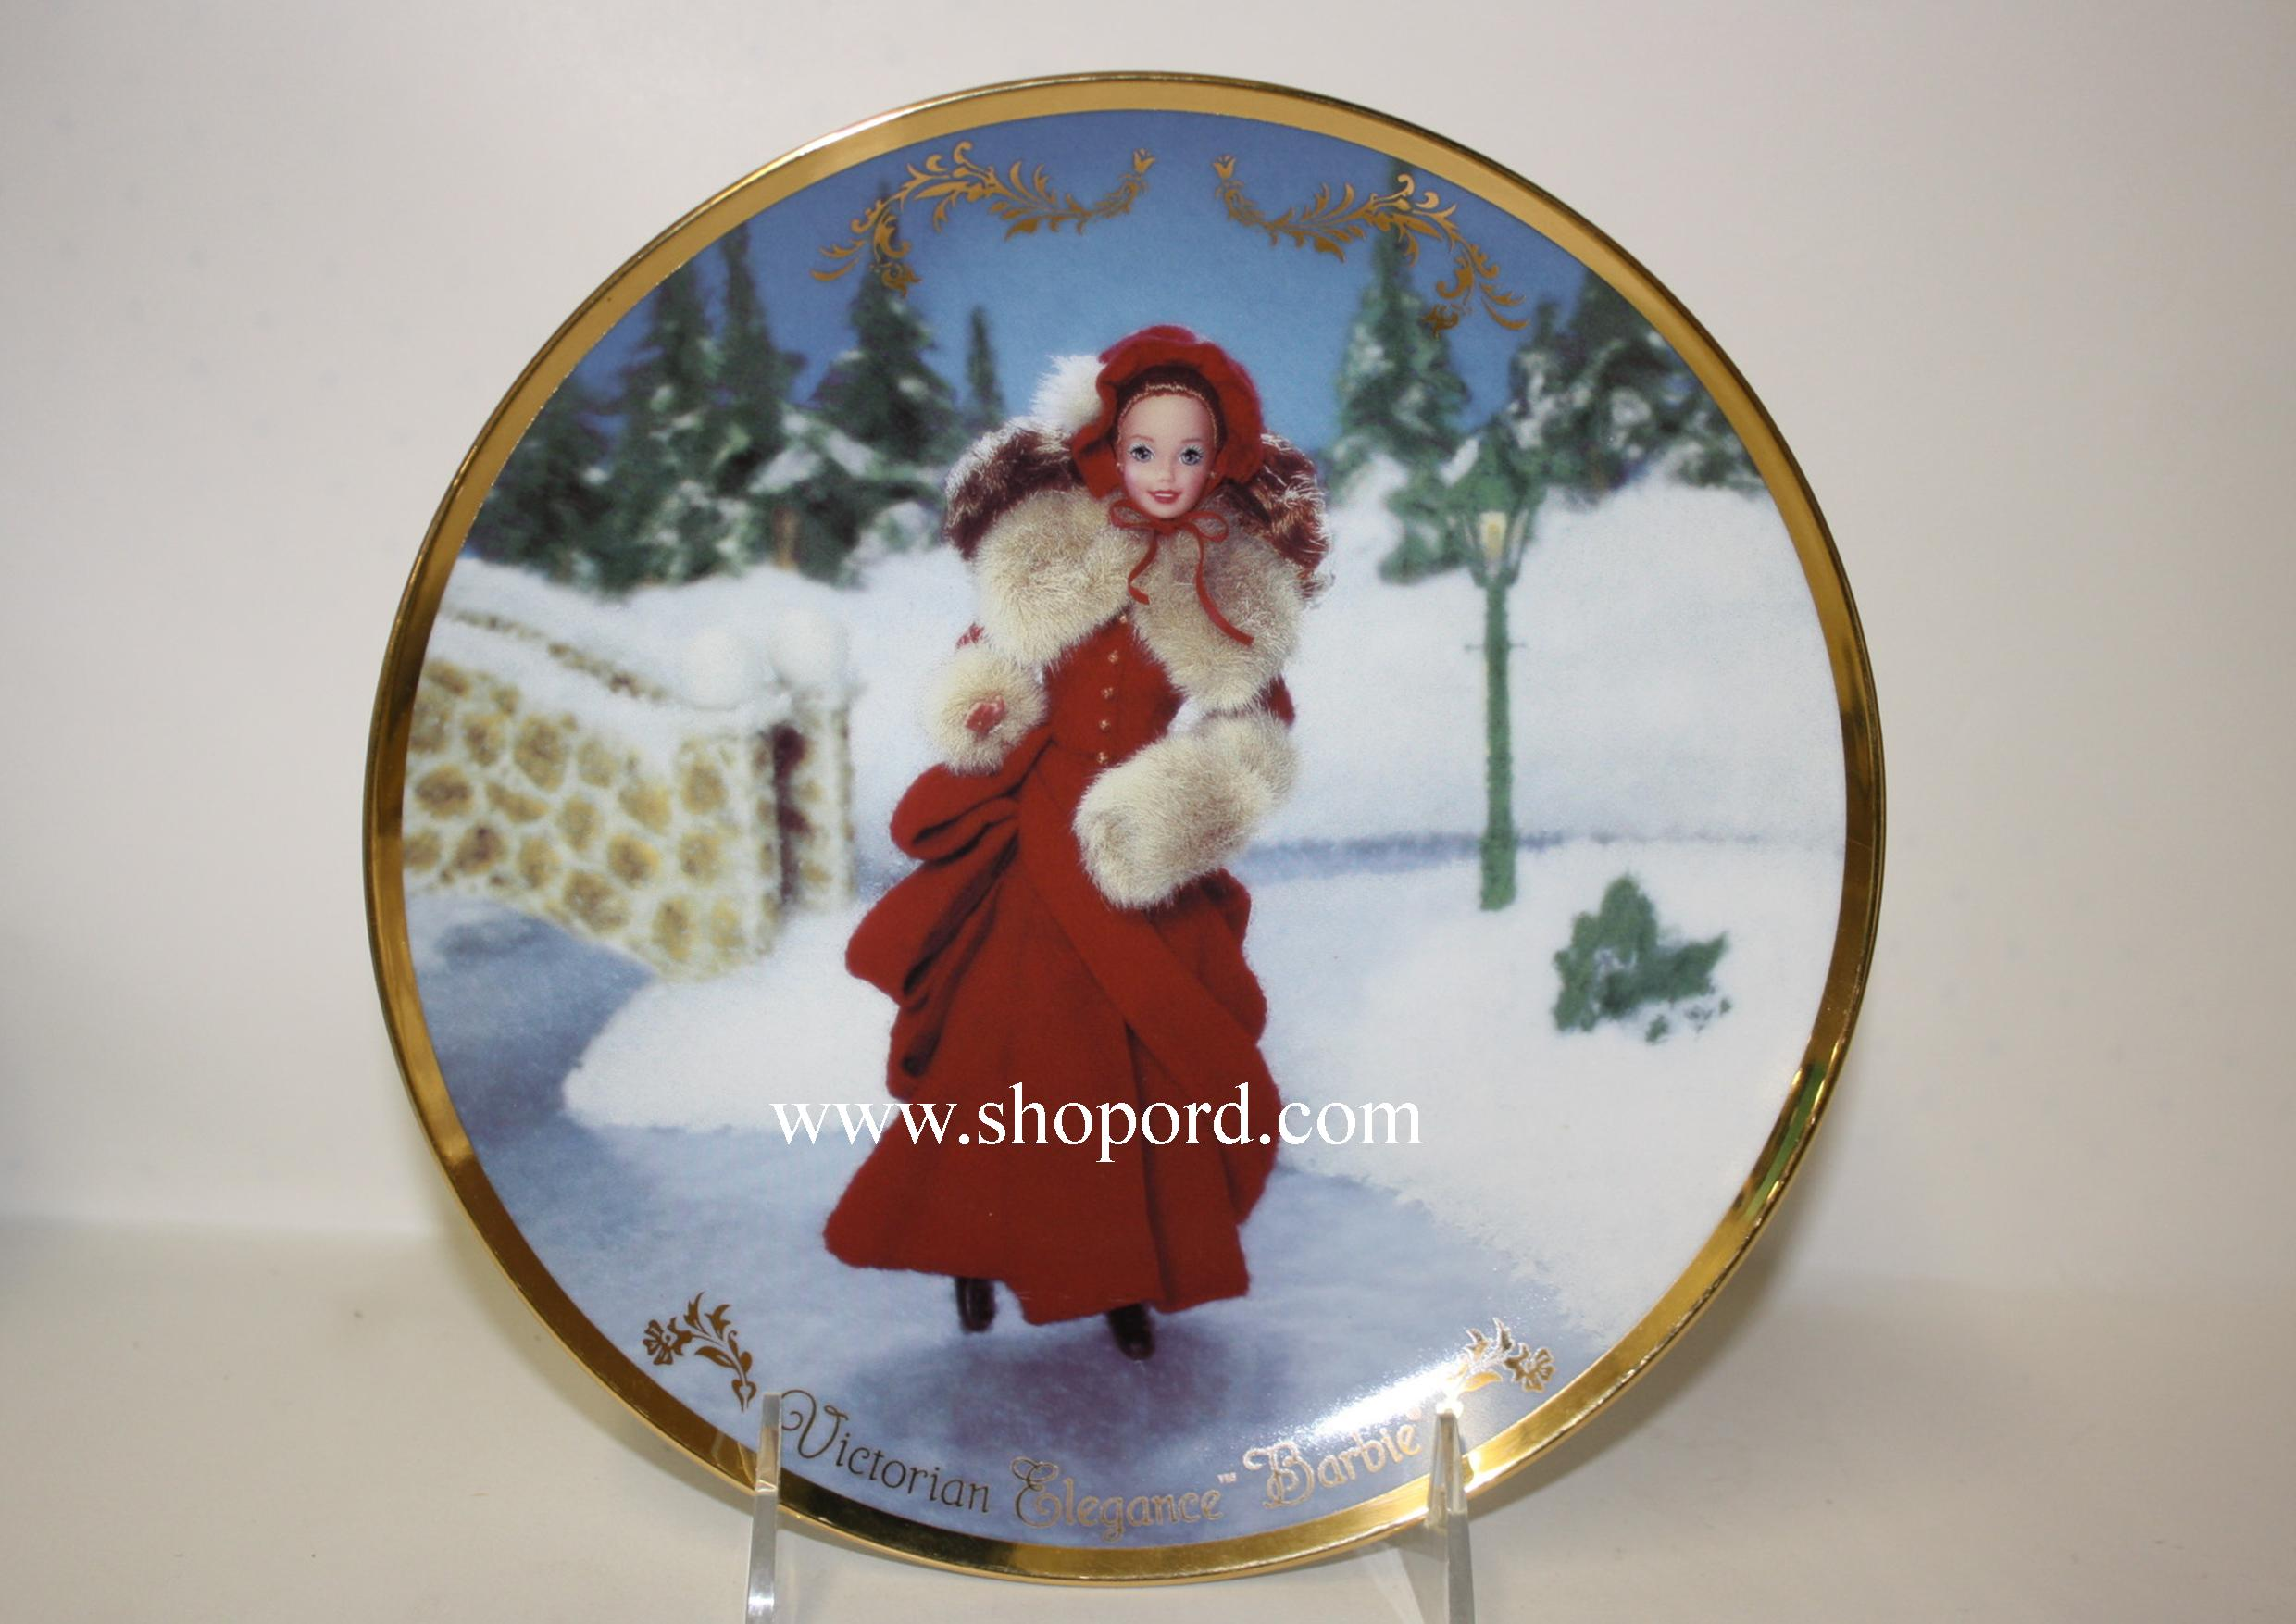 Hallmark 1997 Victorian Elegance Barbie Plate Christmas Collection QHB6005 Limited Edition #4258 out of 24500 Plates